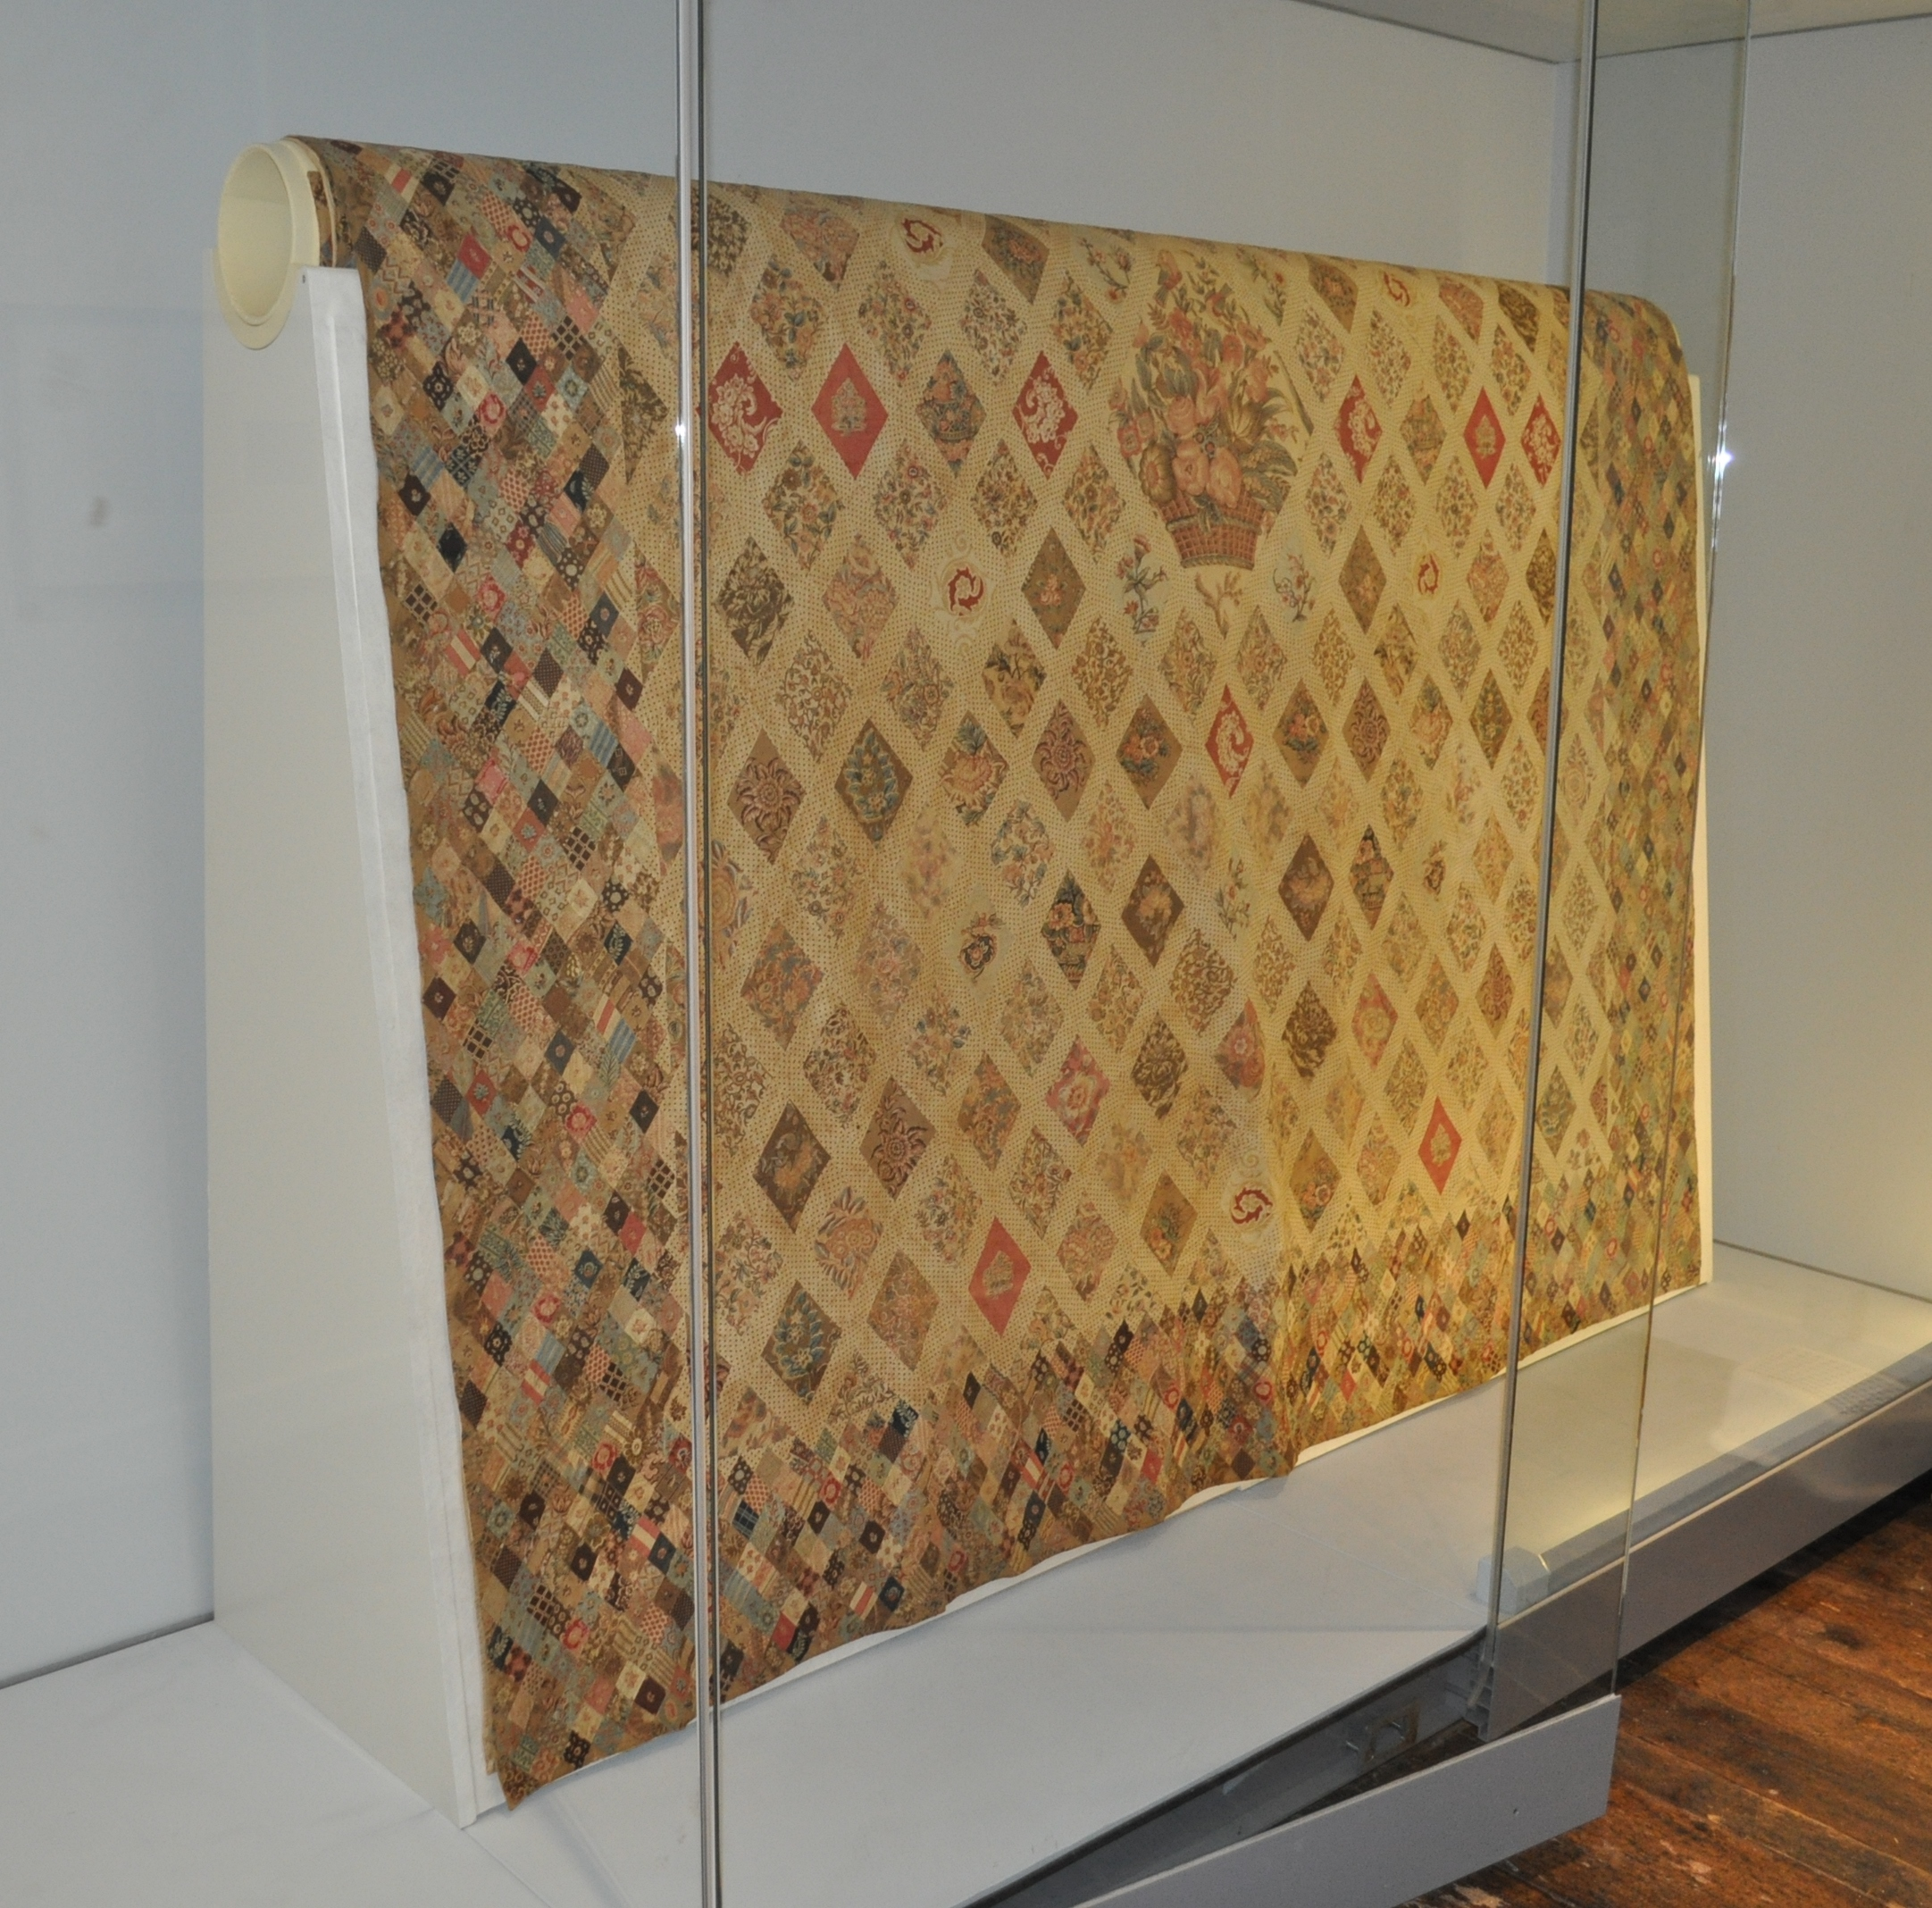 The coverlet on display, after conservation treatment